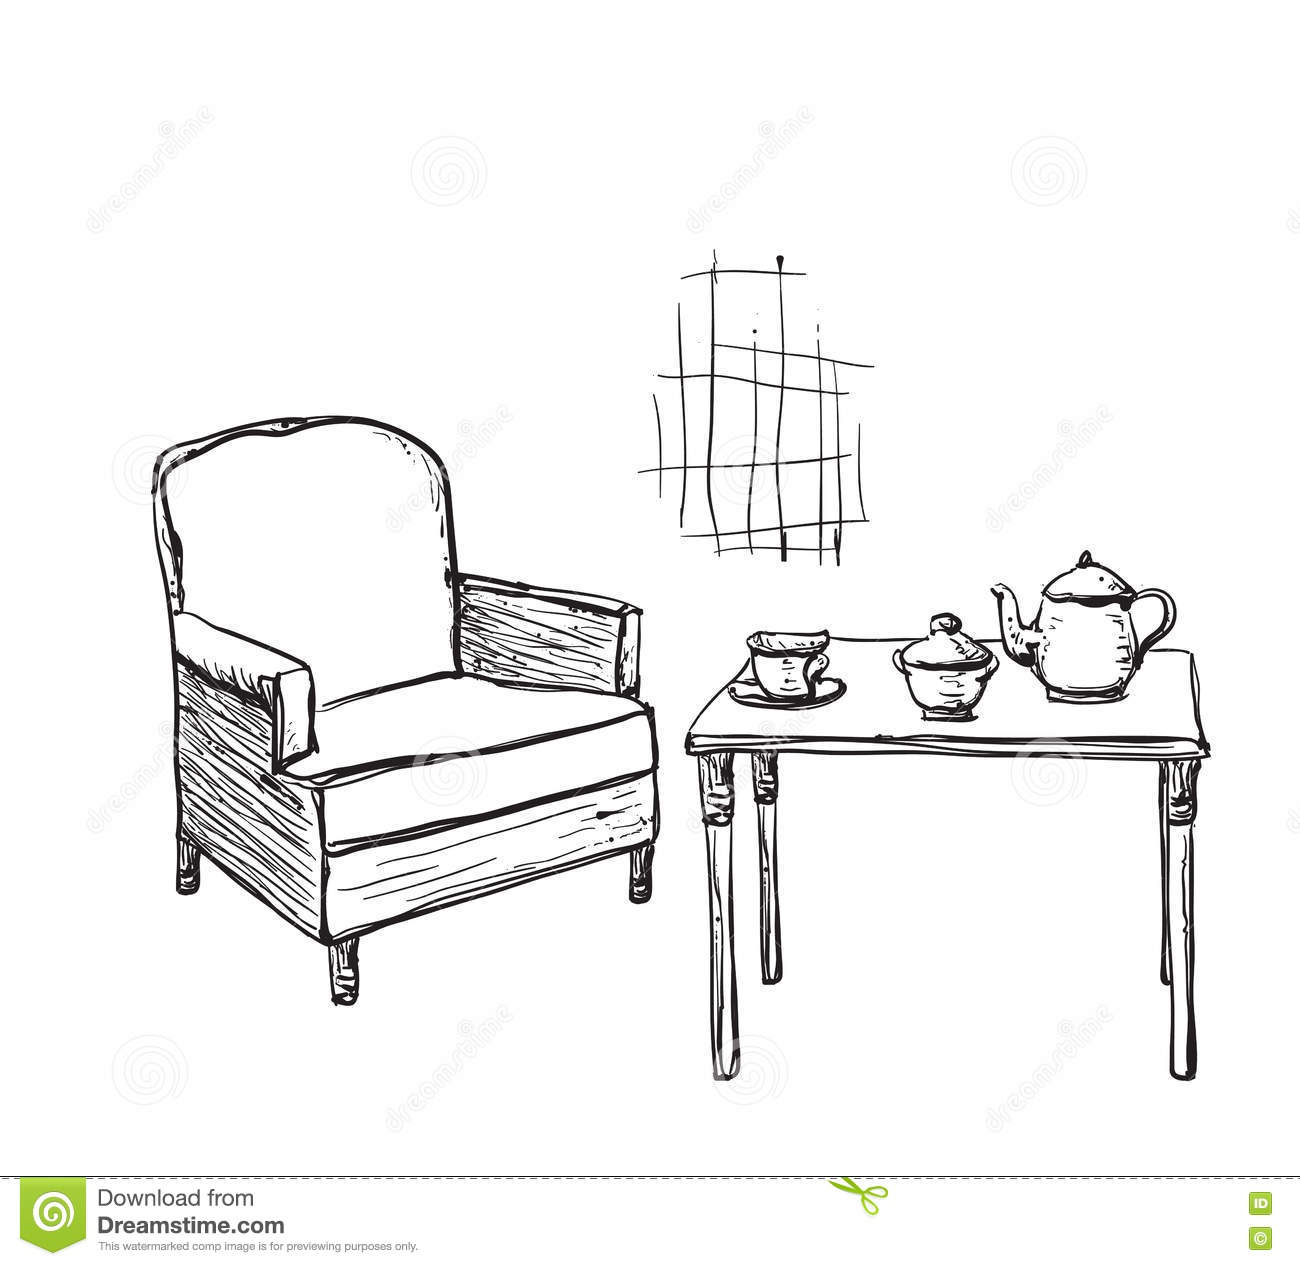 Black and white chair drawing - Hand Drawn Chair And Table Hand Drawn Black And White